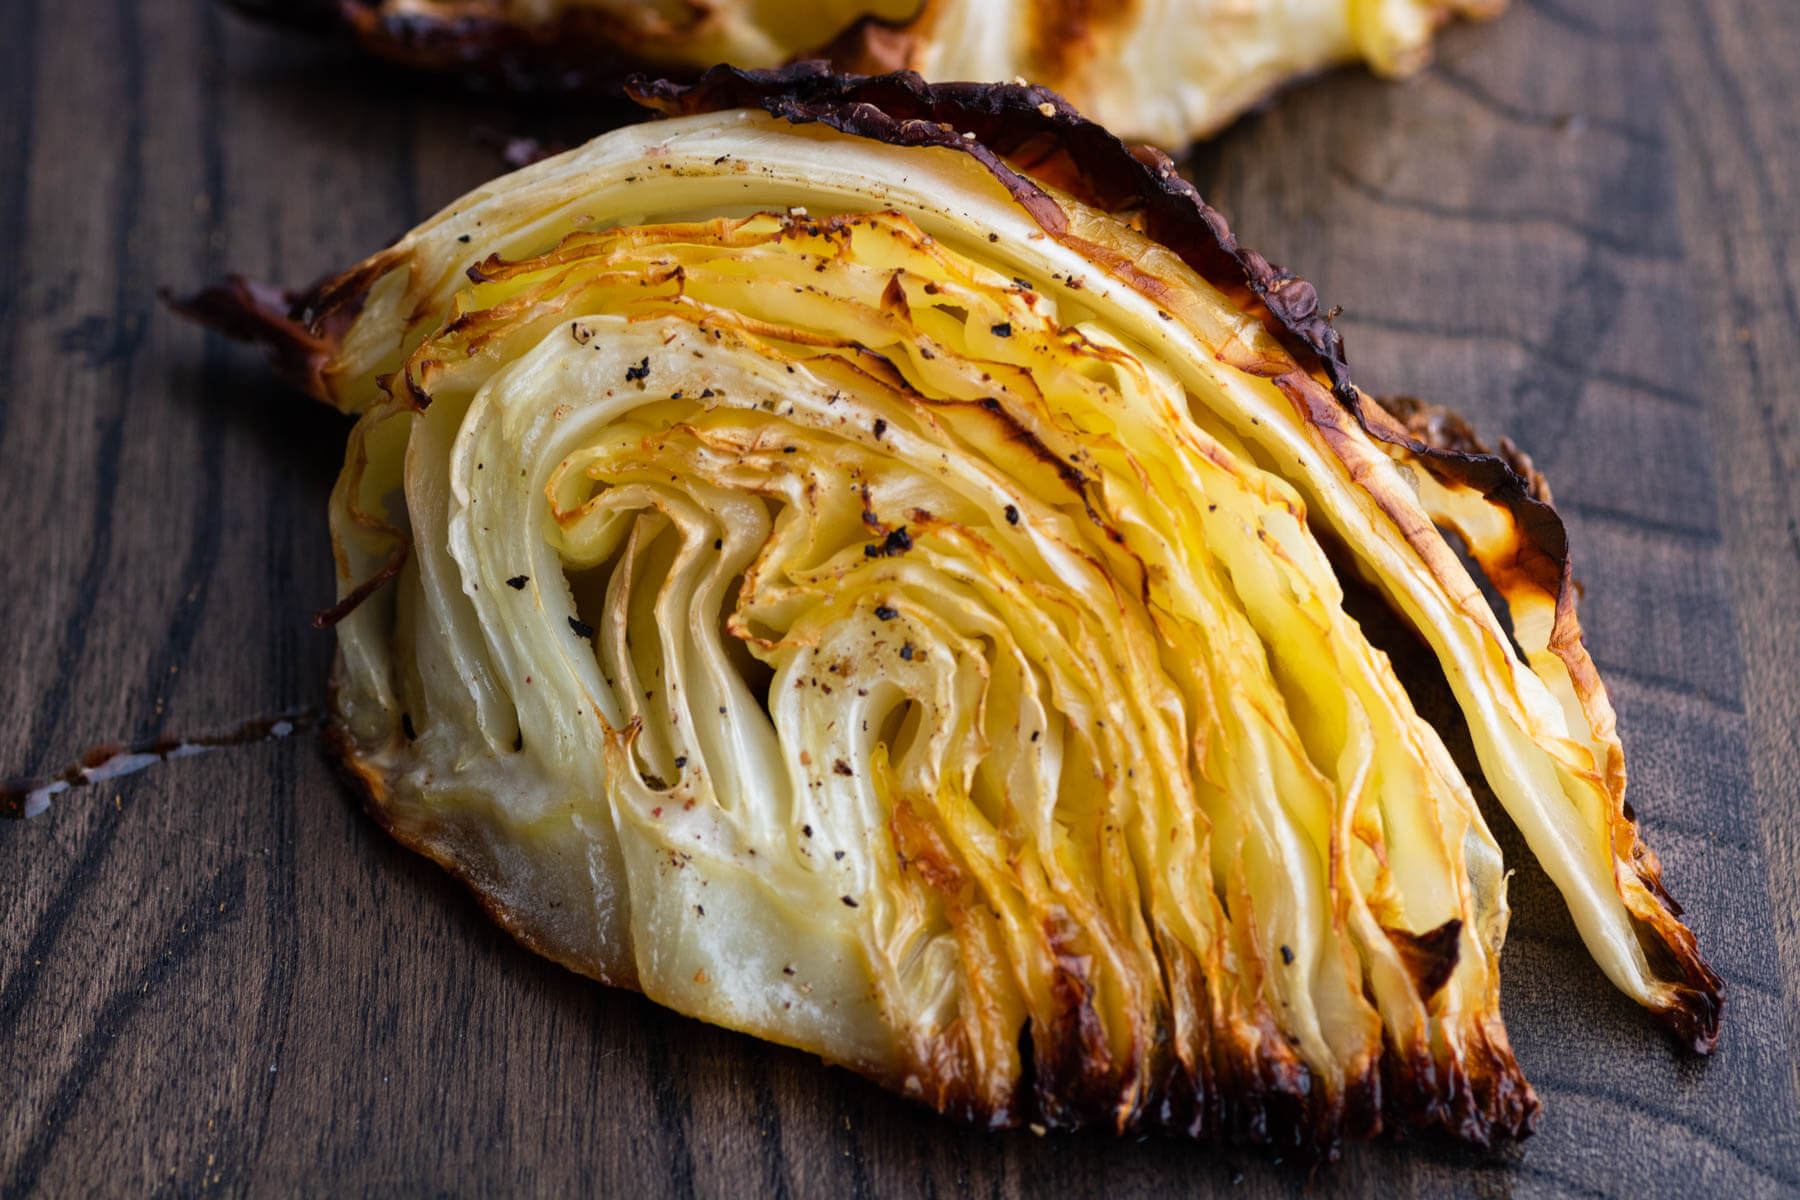 A wedge of Roasted Cabbage on a dark board.